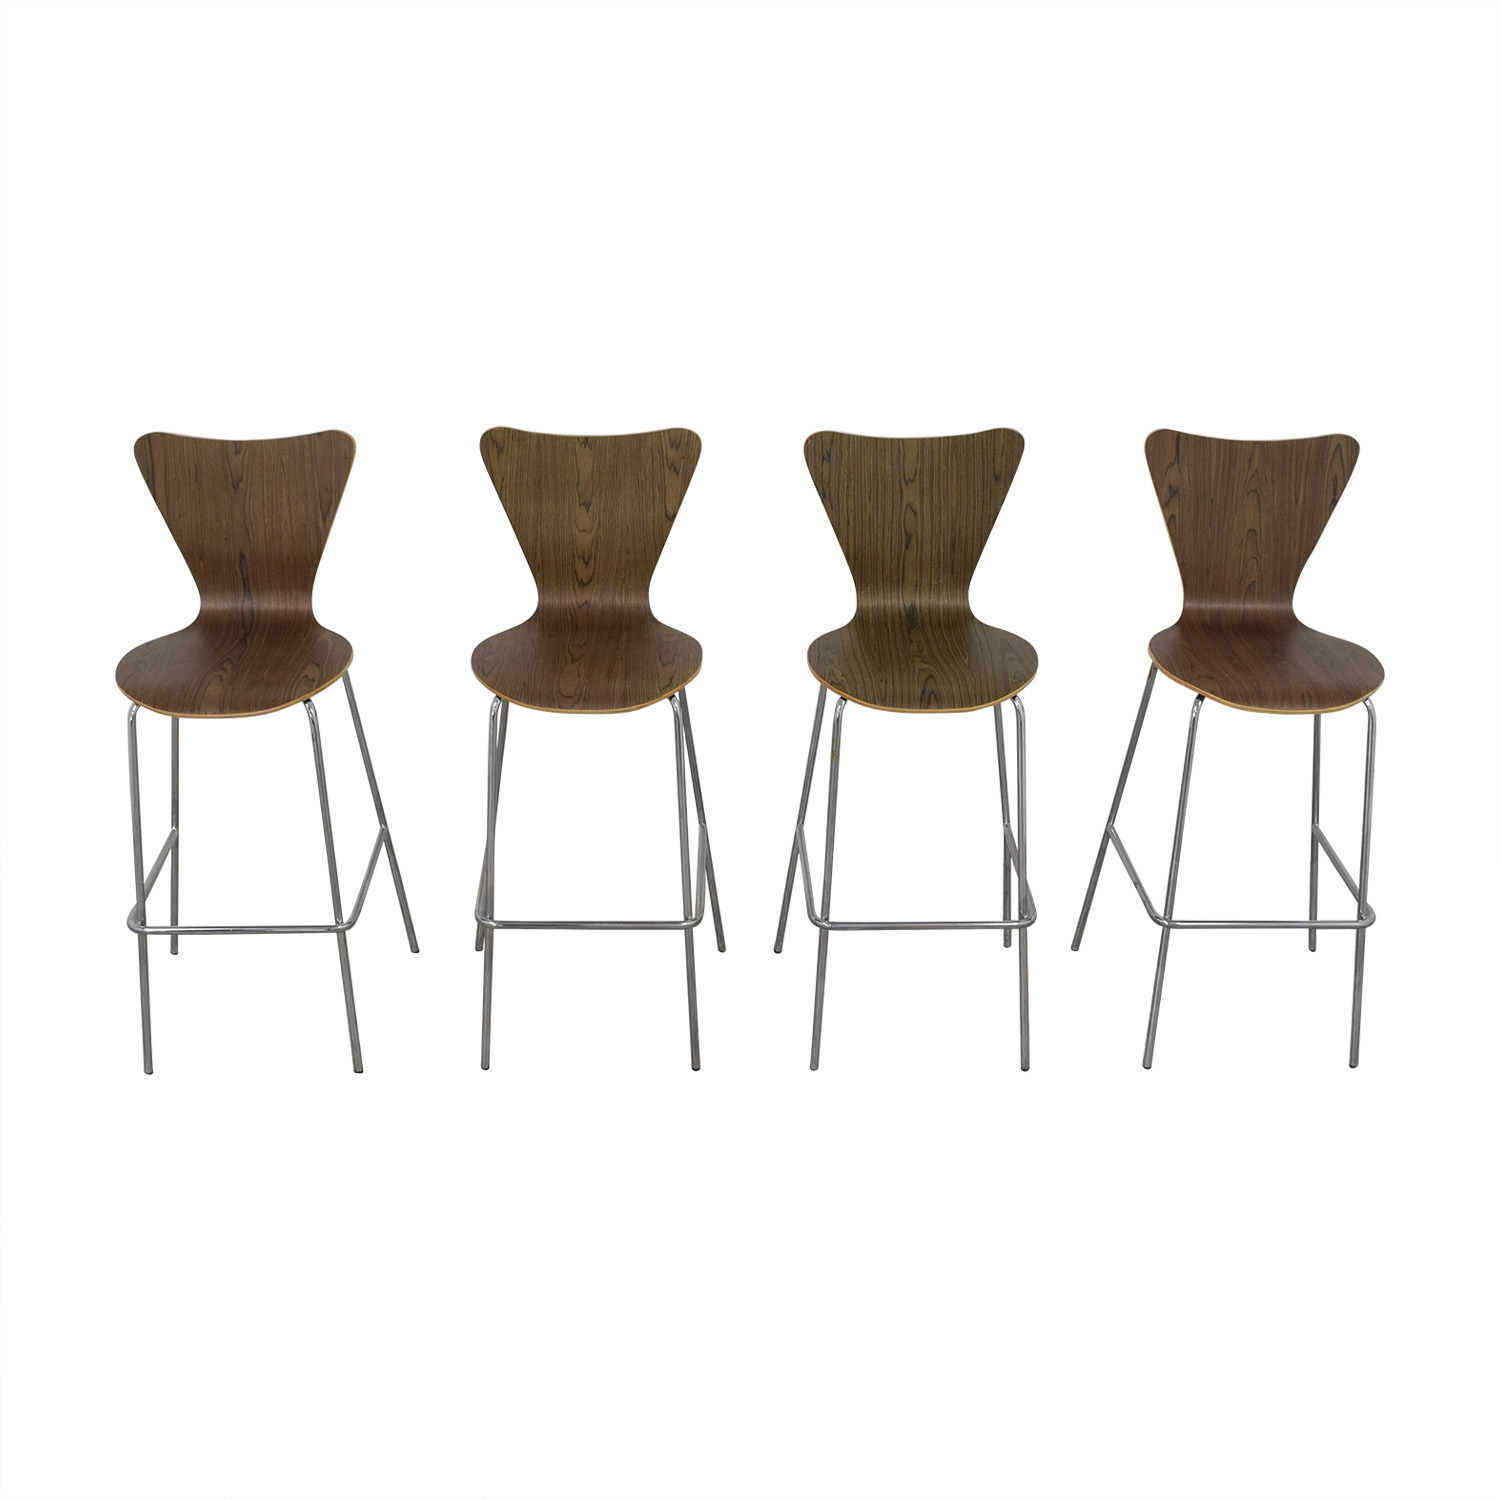 Modway Furniture Arne Jacobsen Bar Stools / Chairs